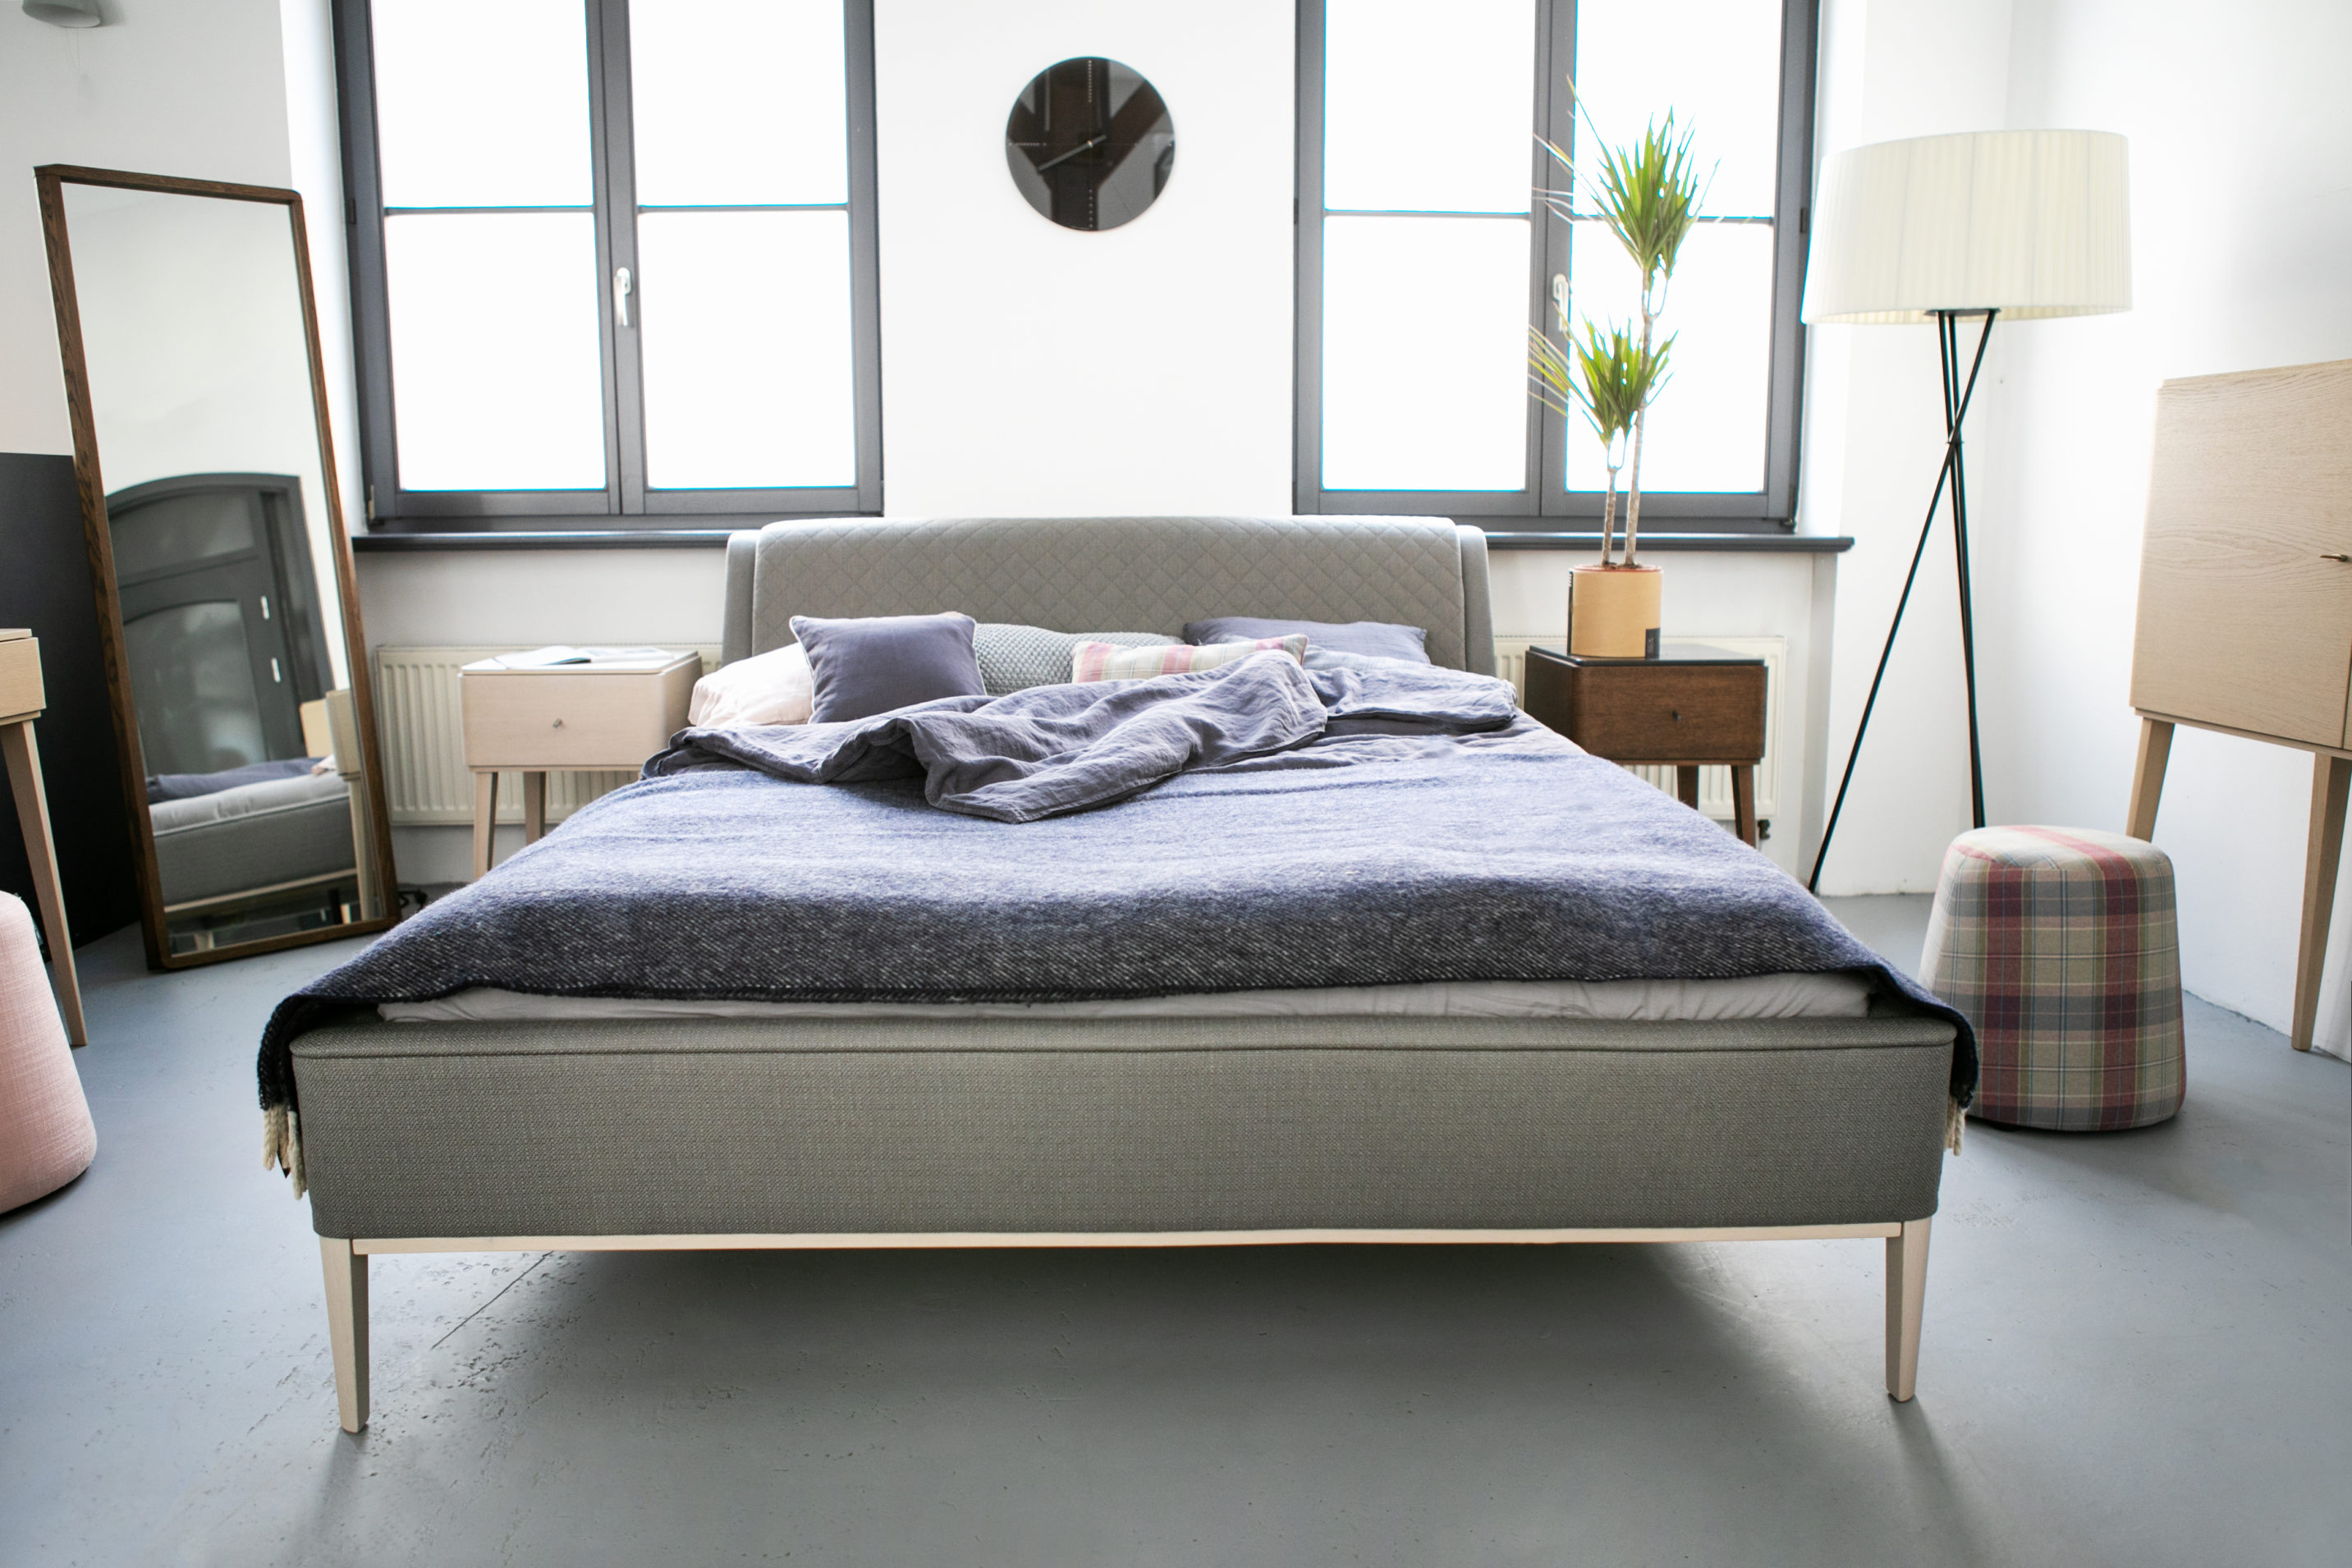 Essence Caro bed 160 or 180